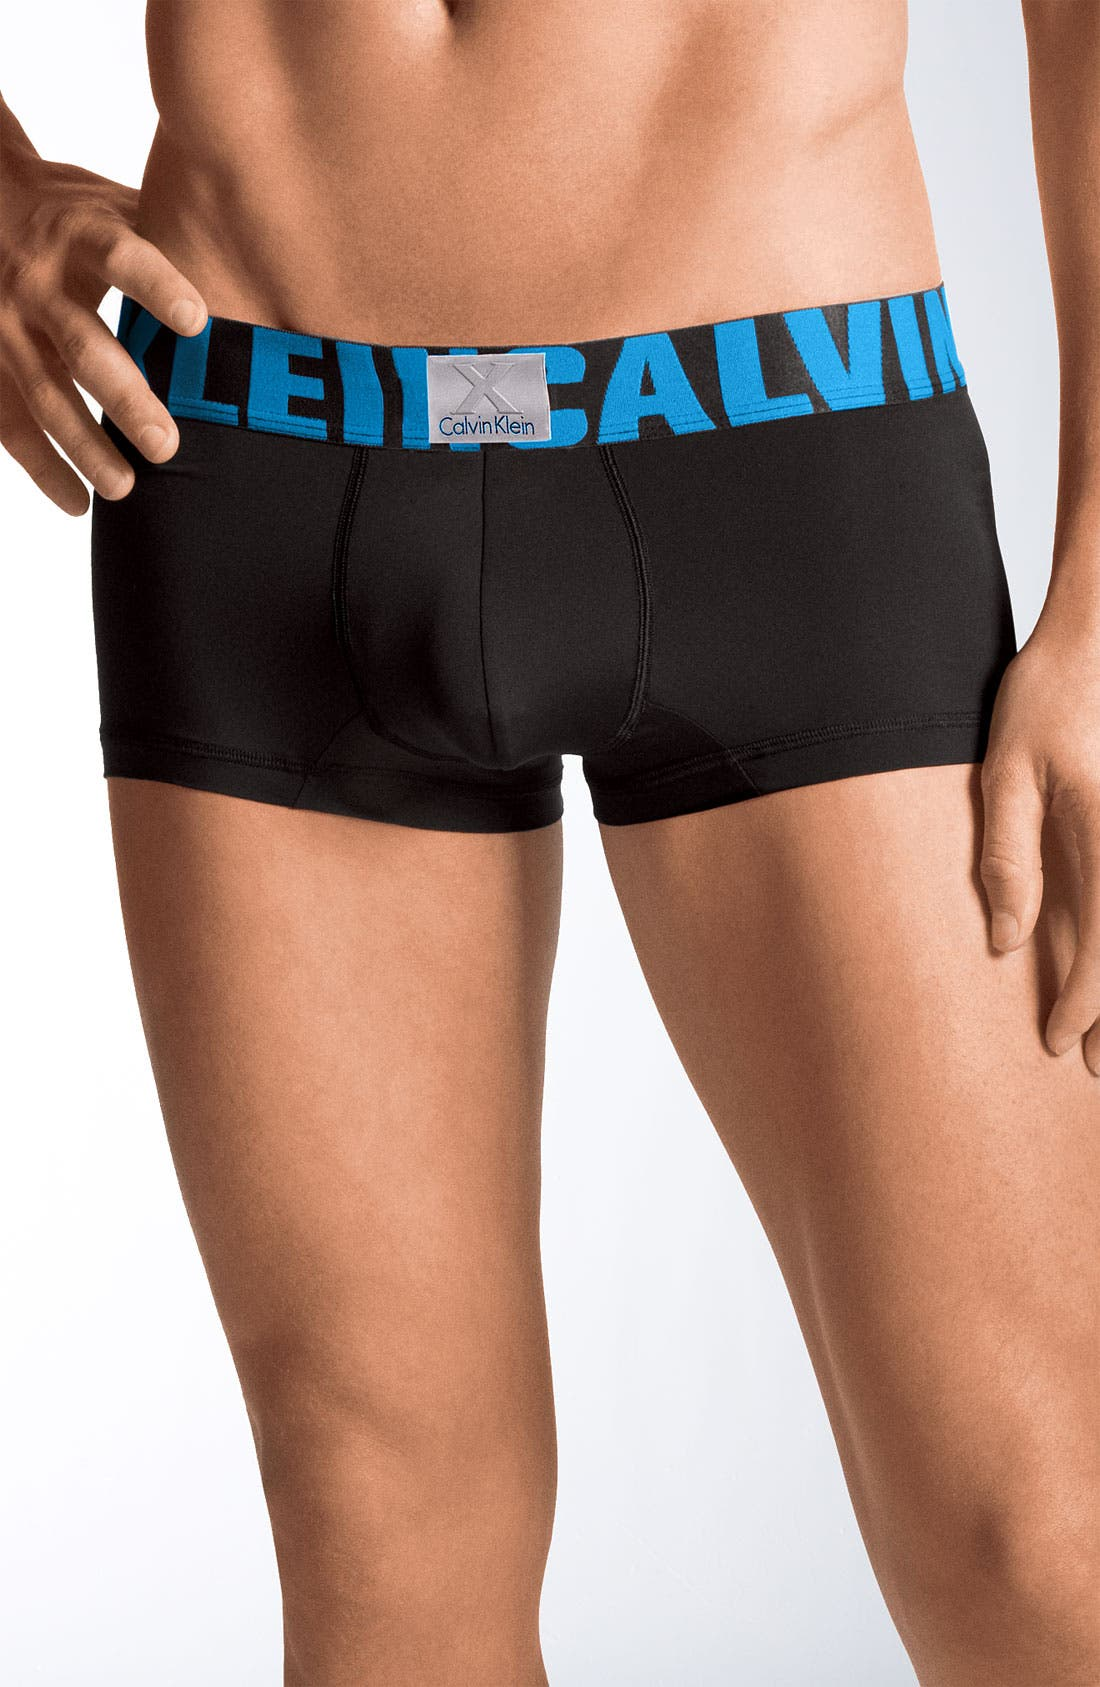 Alternate Image 1 Selected - Calvin Klein 'X' Stretch Cotton Boxer Briefs